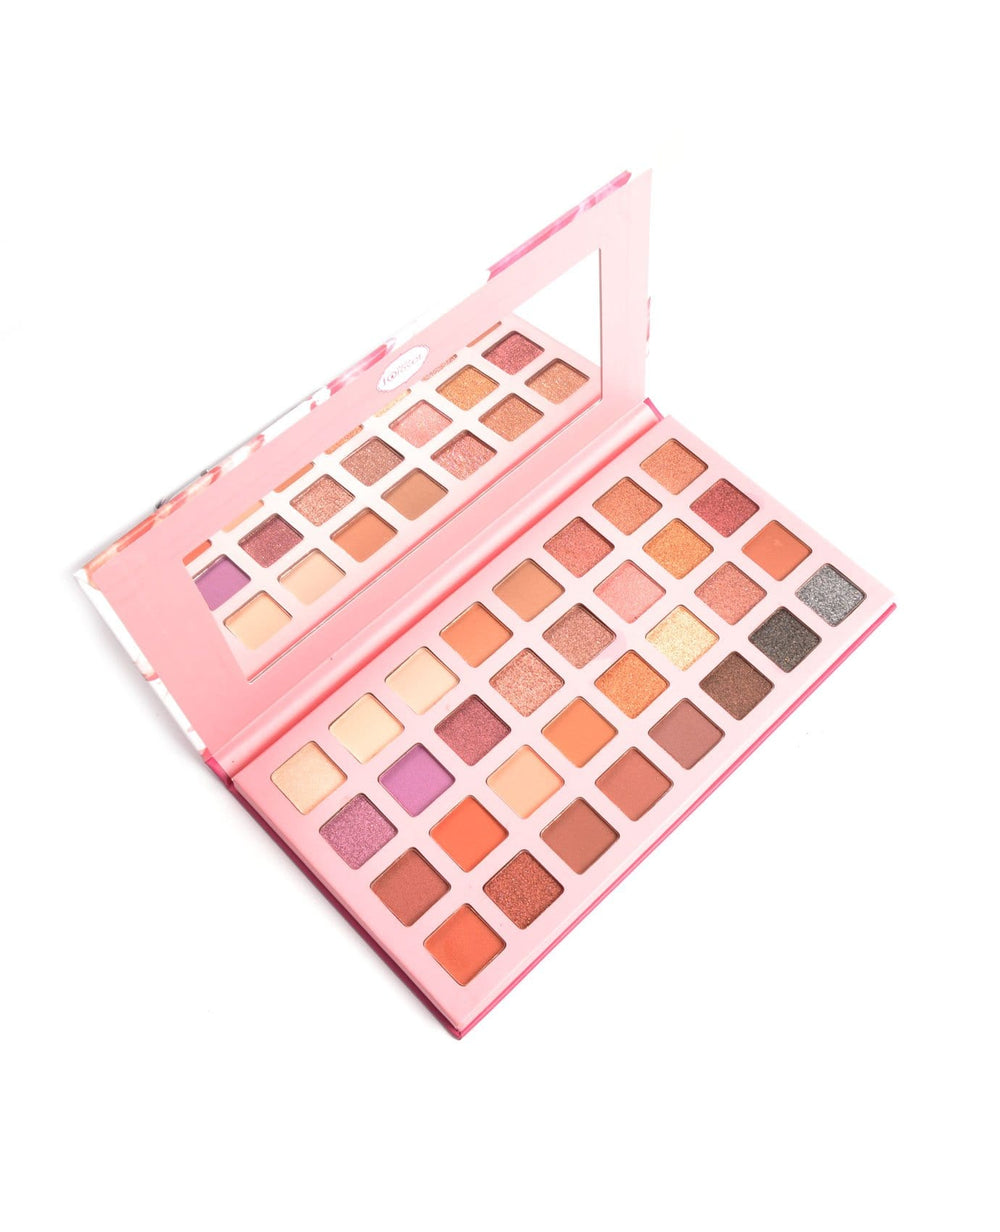 Bella Forever Popsicle Eyeshadow Palette, COSMETIC